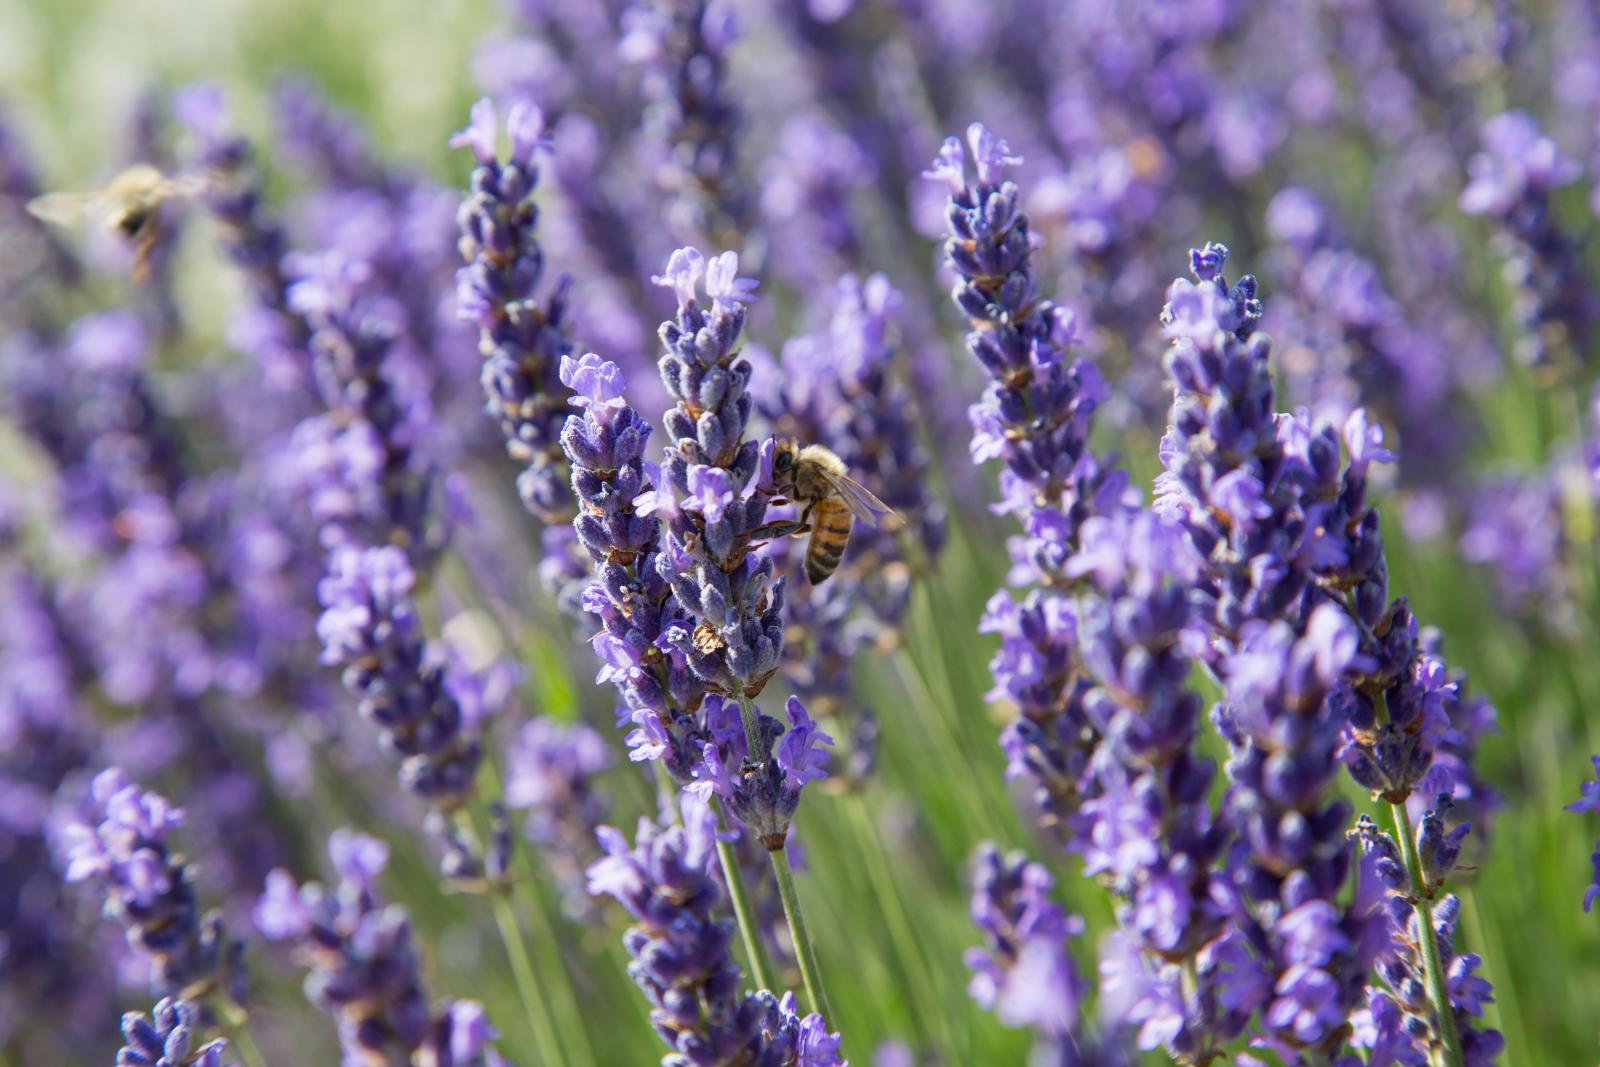 Lavender is great for attracting bees to your garden